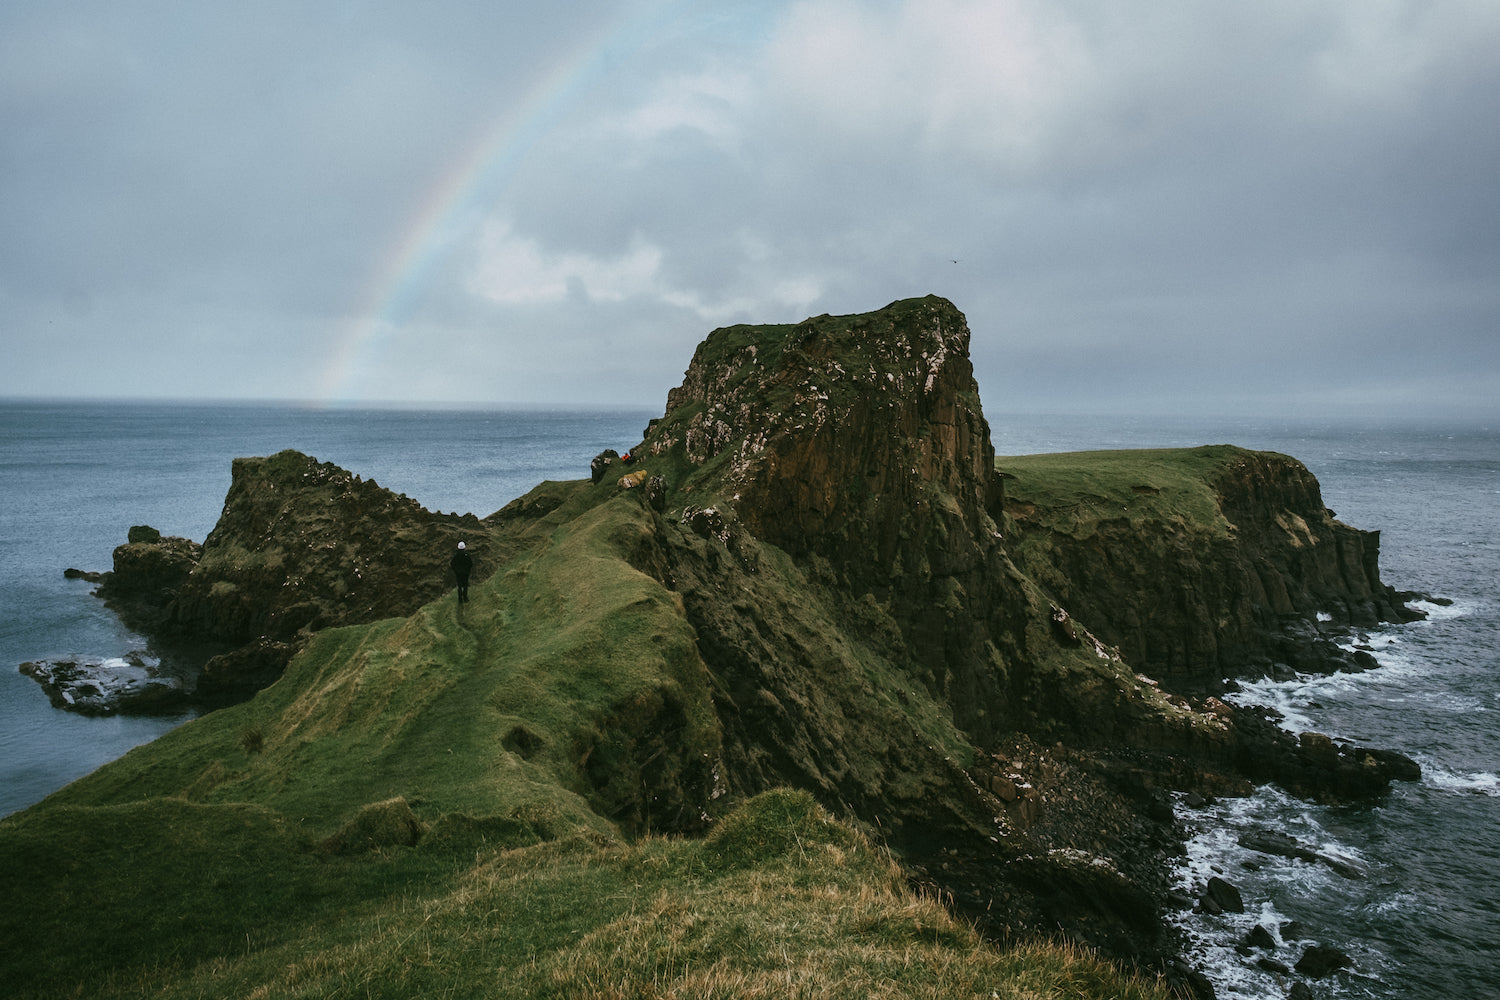 Rainbow of the sea at Isle of Sky, Scotland